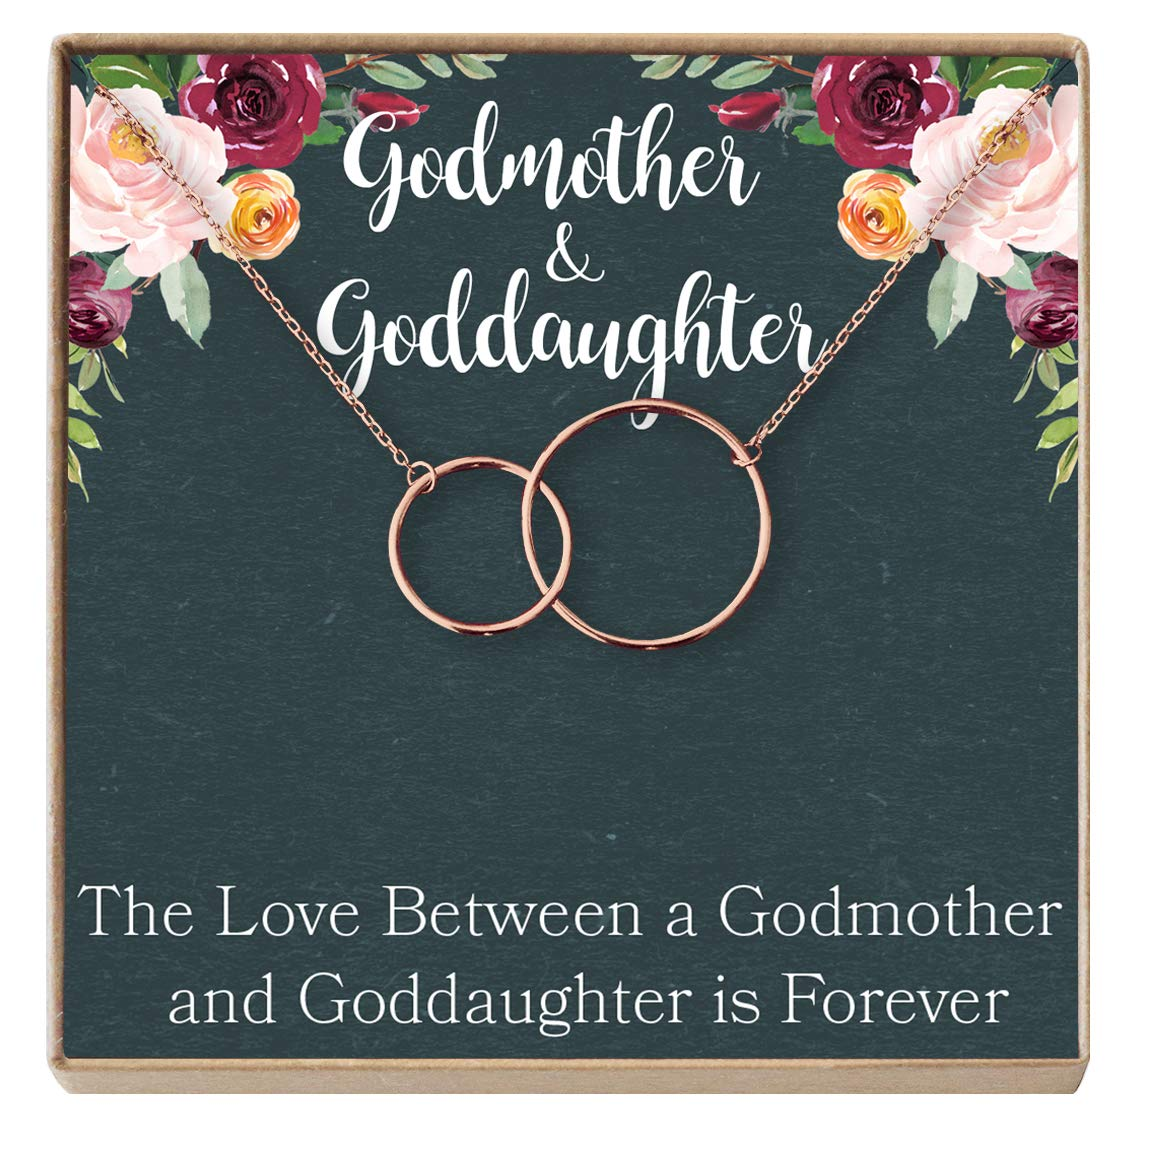 Request Godmother Proposal Dear Ava Godmother-Goddaughter Gift Necklace 2 Interlocking Circles